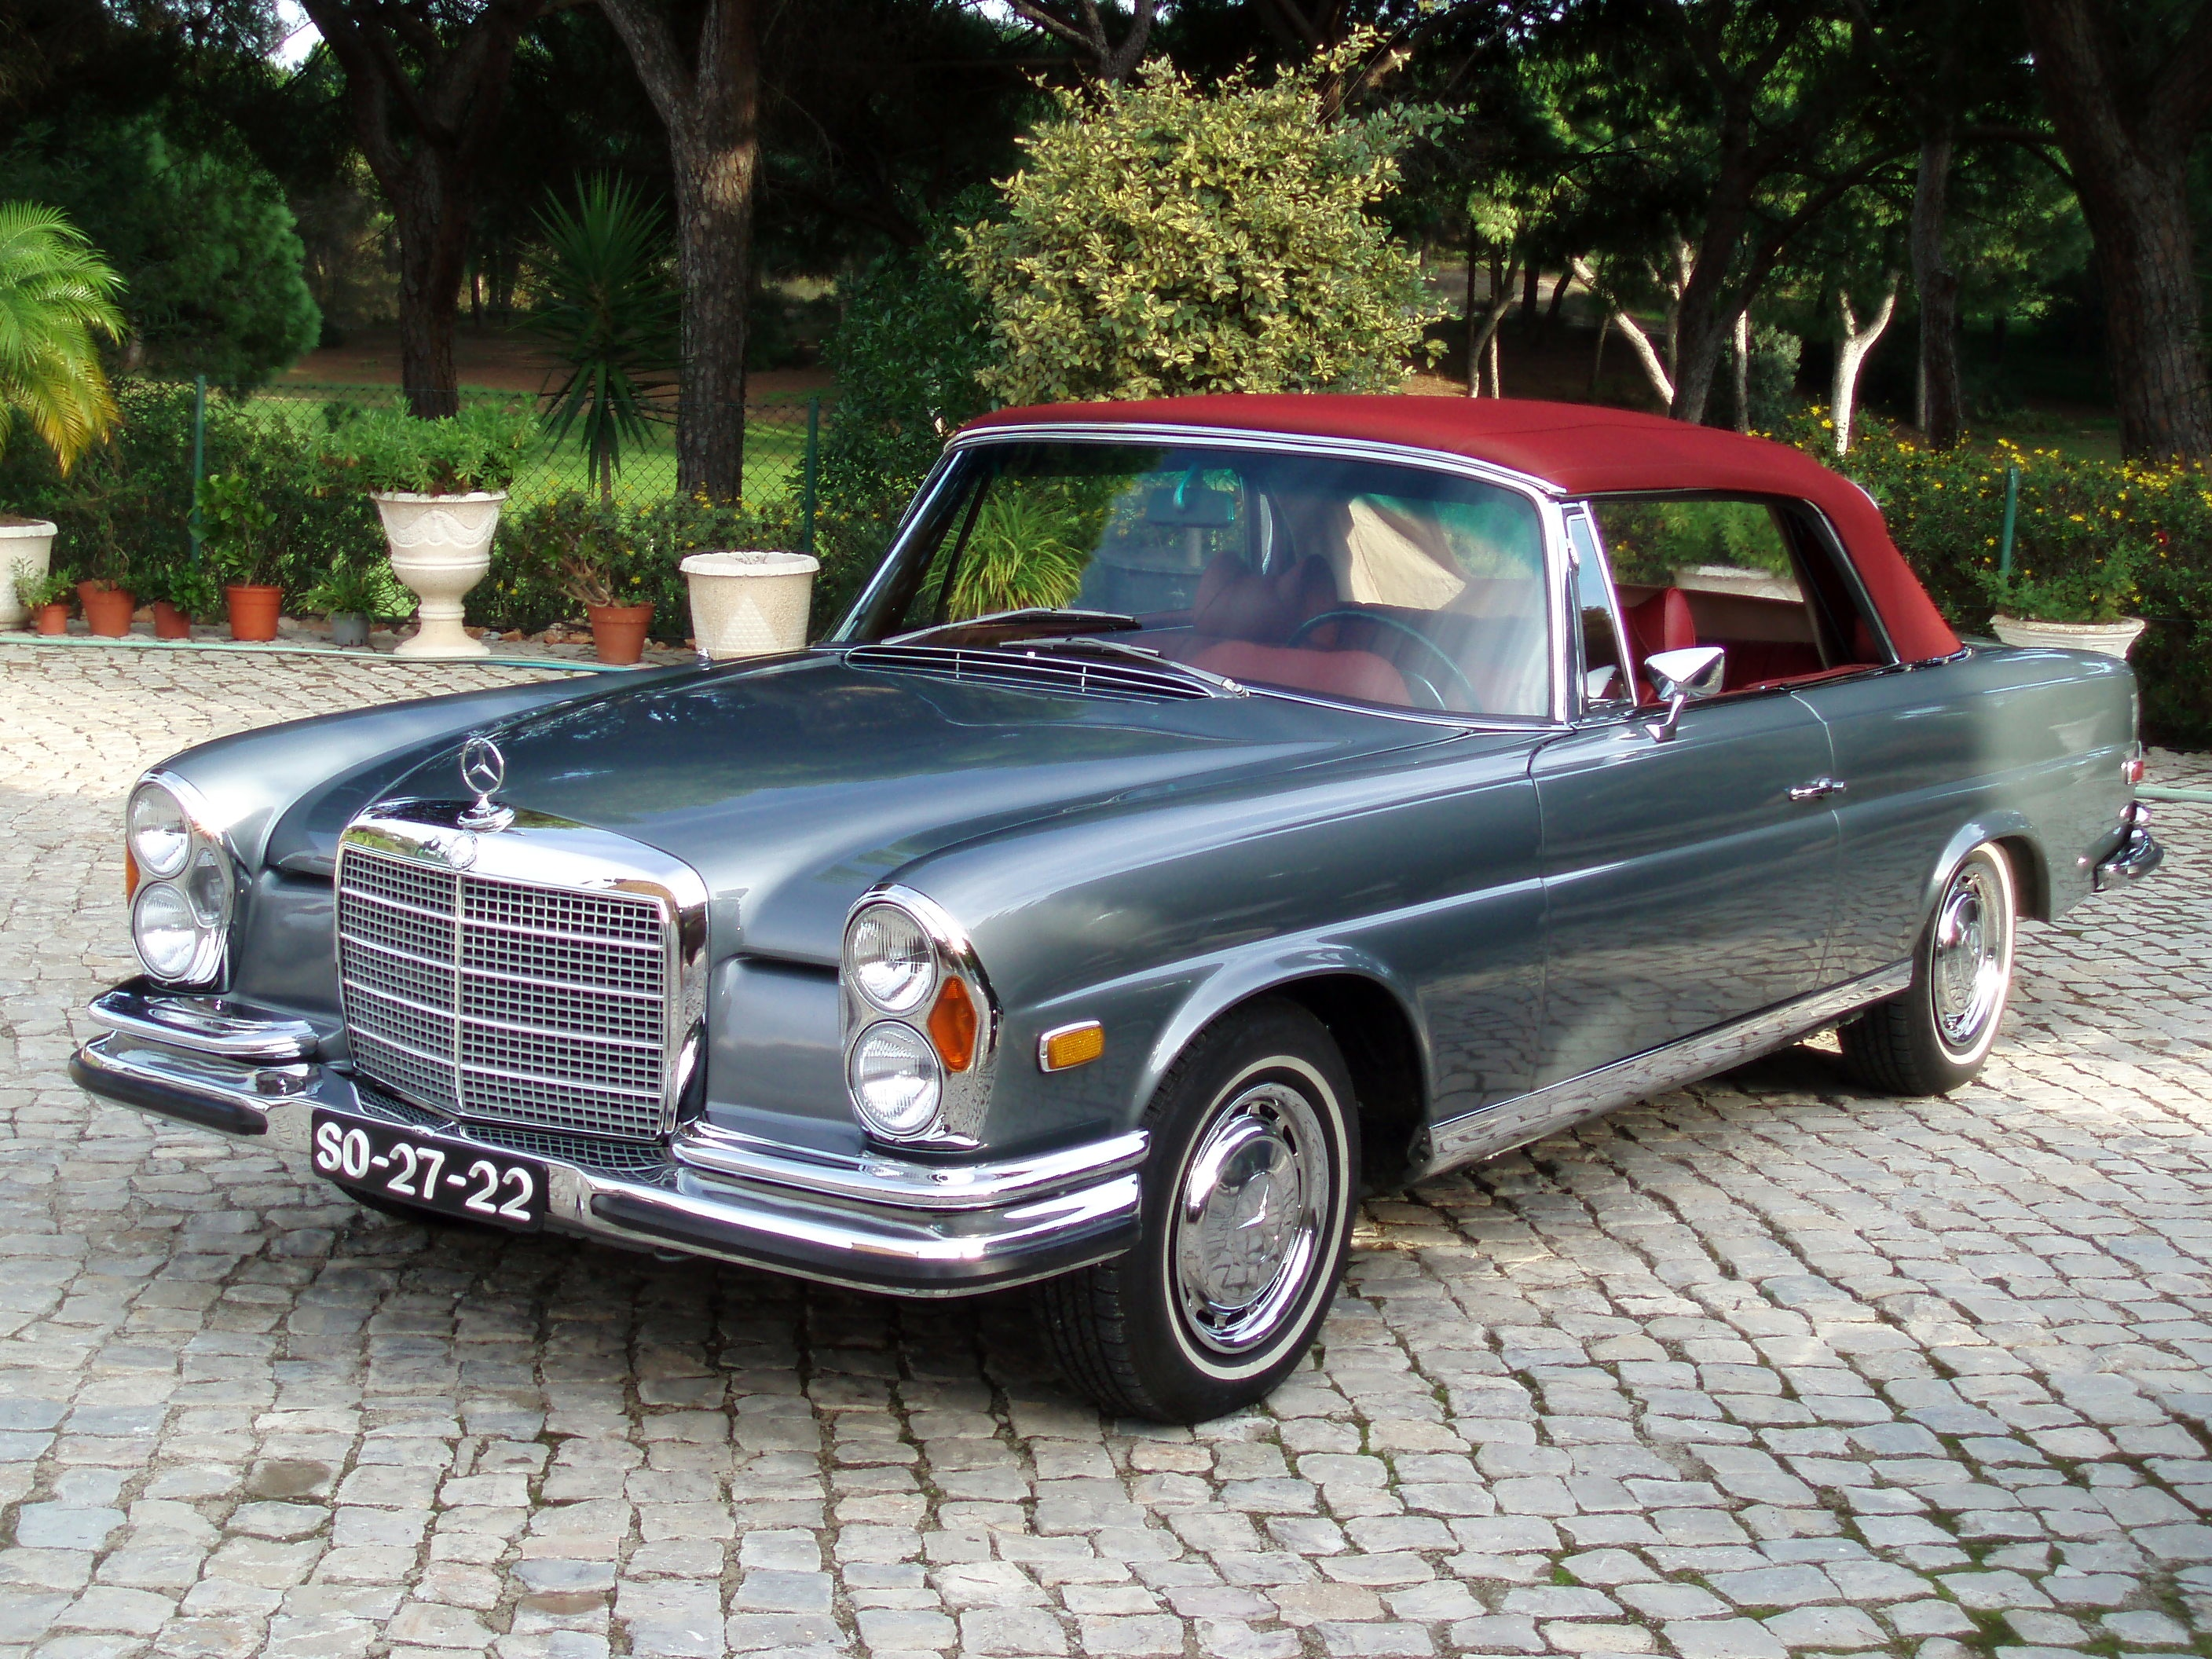 1970 mercedes benz 280 se cabriolet images pictures and